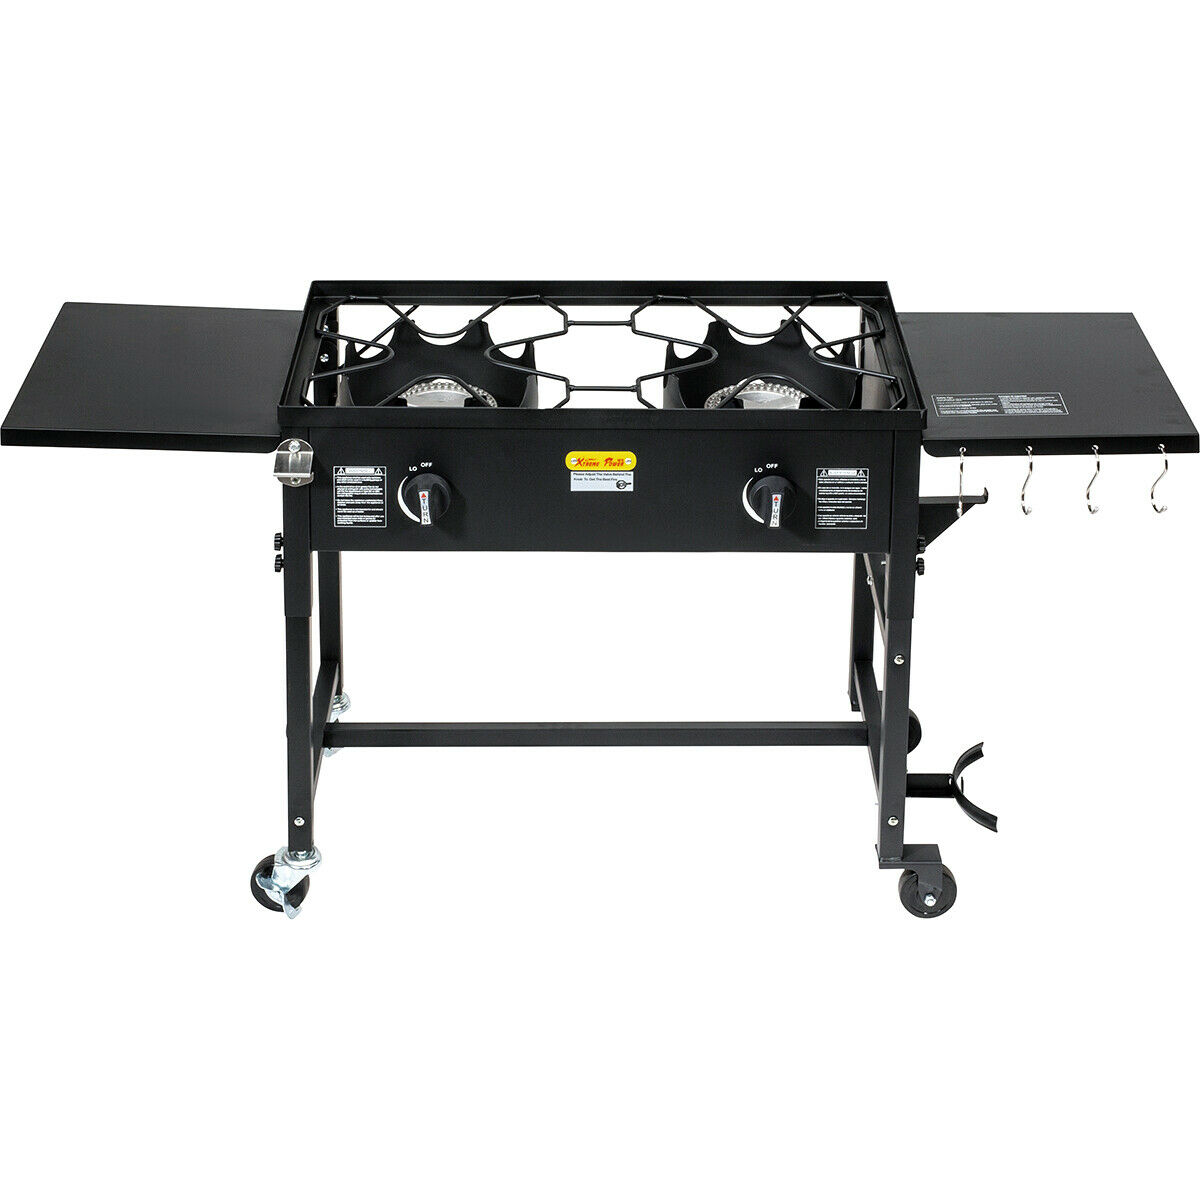 Dual Burner Stove Cooking Station Outdoor Camping Propane  BBQ Grill 58,000BTU  free delivery